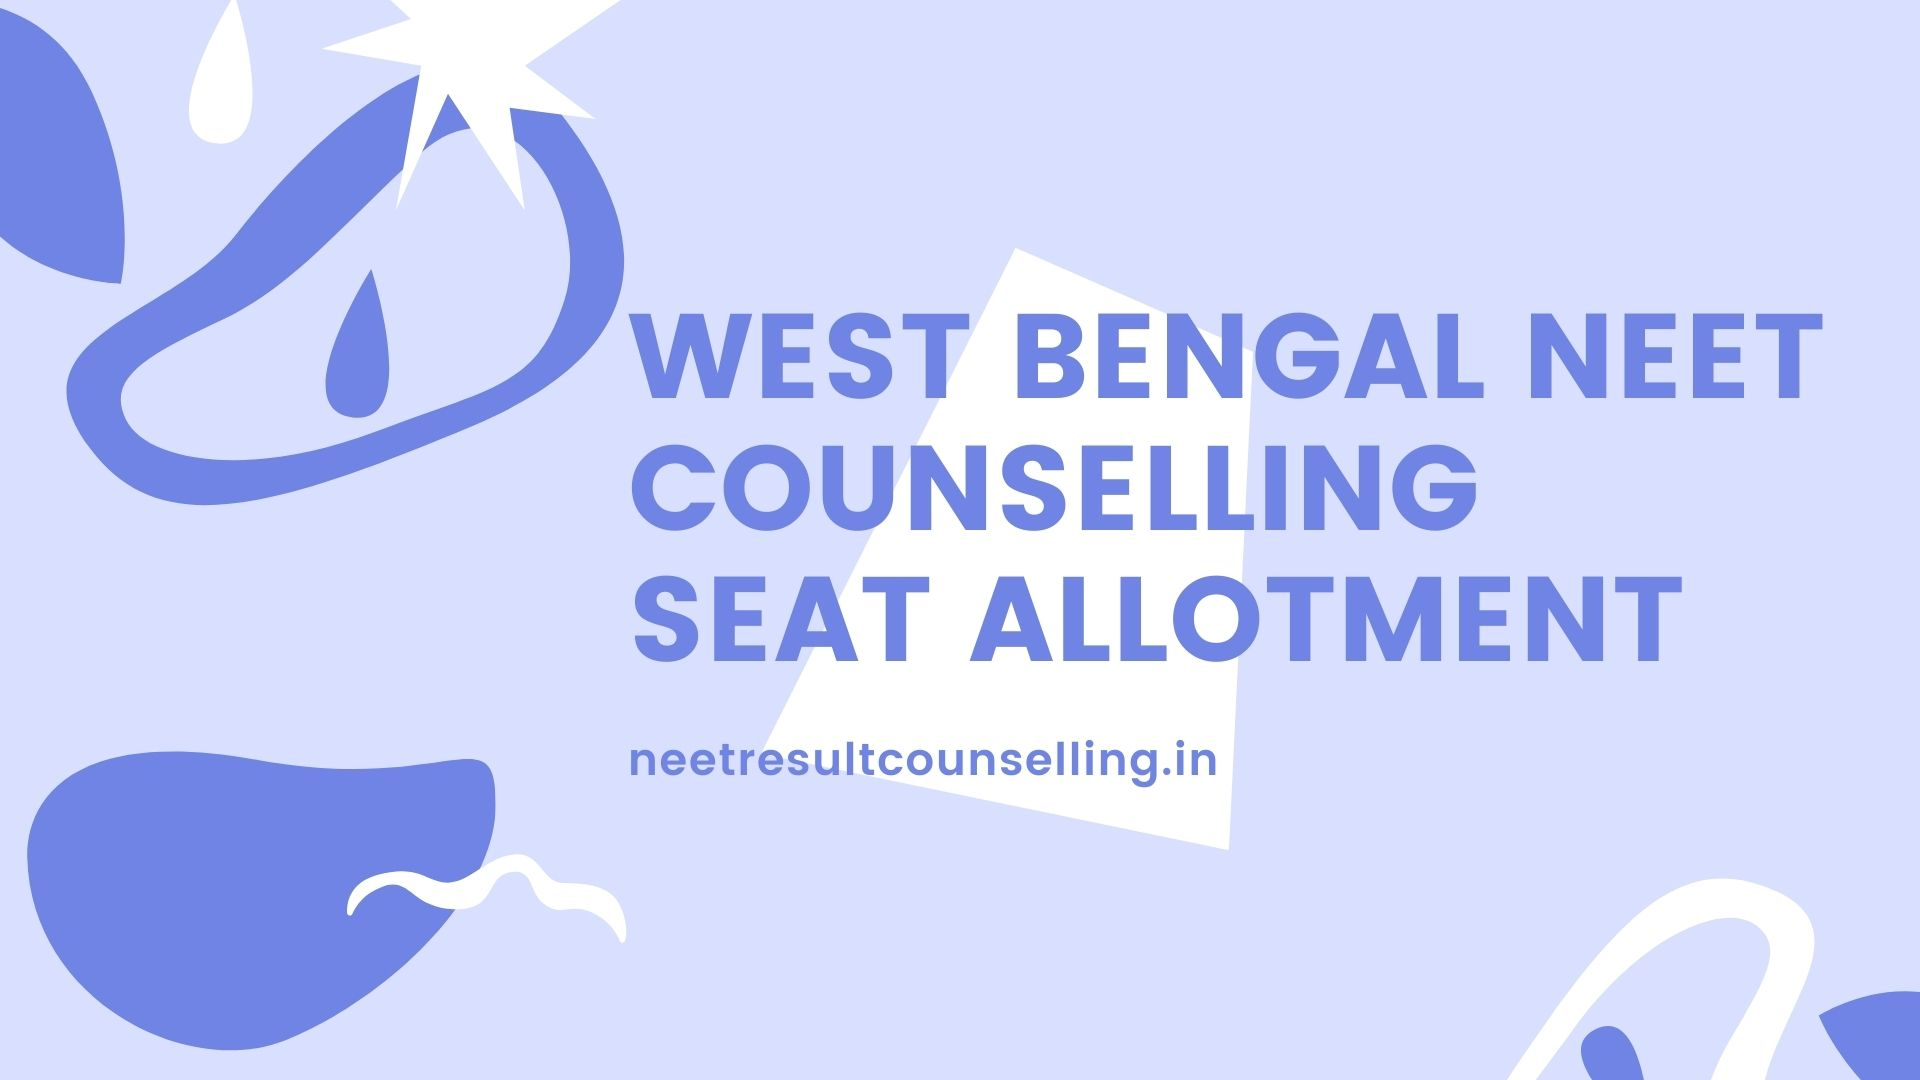 West-Bengal-NEET-Counselling-Seat-Allotment-2020